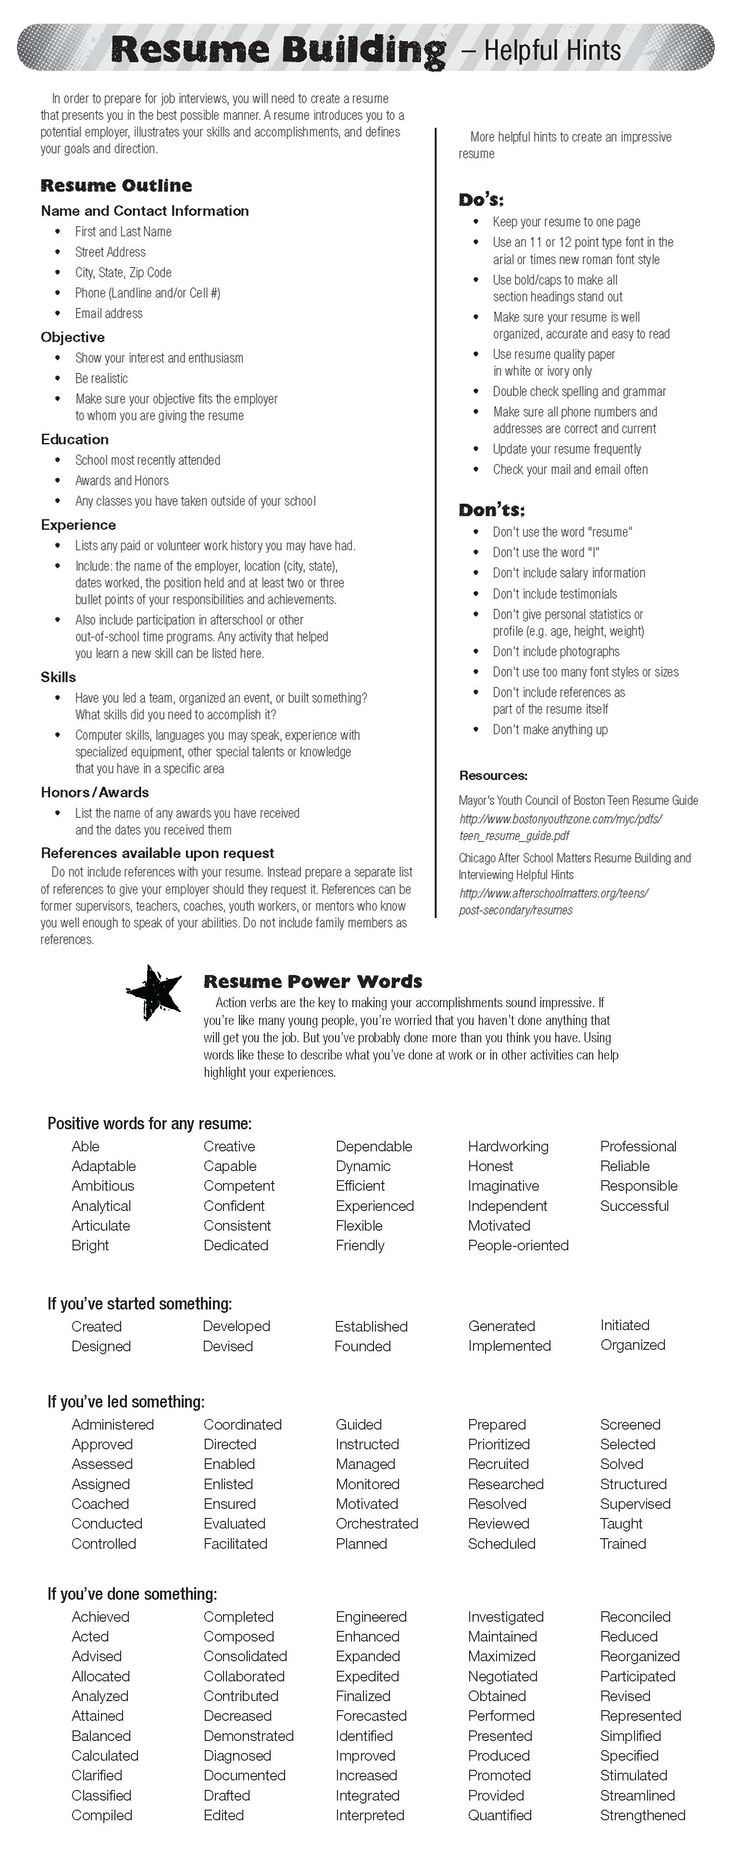 Opposenewapstandardsus  Remarkable  Ideas About Resume On Pinterest  Cv Format Resume Cv And  With Fair  Ideas About Resume On Pinterest  Cv Format Resume Cv And Resume Templates With Easy On The Eye Professional Resume Builders Also Resume Cover Letters Sample In Addition Property Manager Resume Sample And Winning Resume As Well As System Engineer Resume Additionally Hedge Fund Resume From Pinterestcom With Opposenewapstandardsus  Fair  Ideas About Resume On Pinterest  Cv Format Resume Cv And  With Easy On The Eye  Ideas About Resume On Pinterest  Cv Format Resume Cv And Resume Templates And Remarkable Professional Resume Builders Also Resume Cover Letters Sample In Addition Property Manager Resume Sample From Pinterestcom